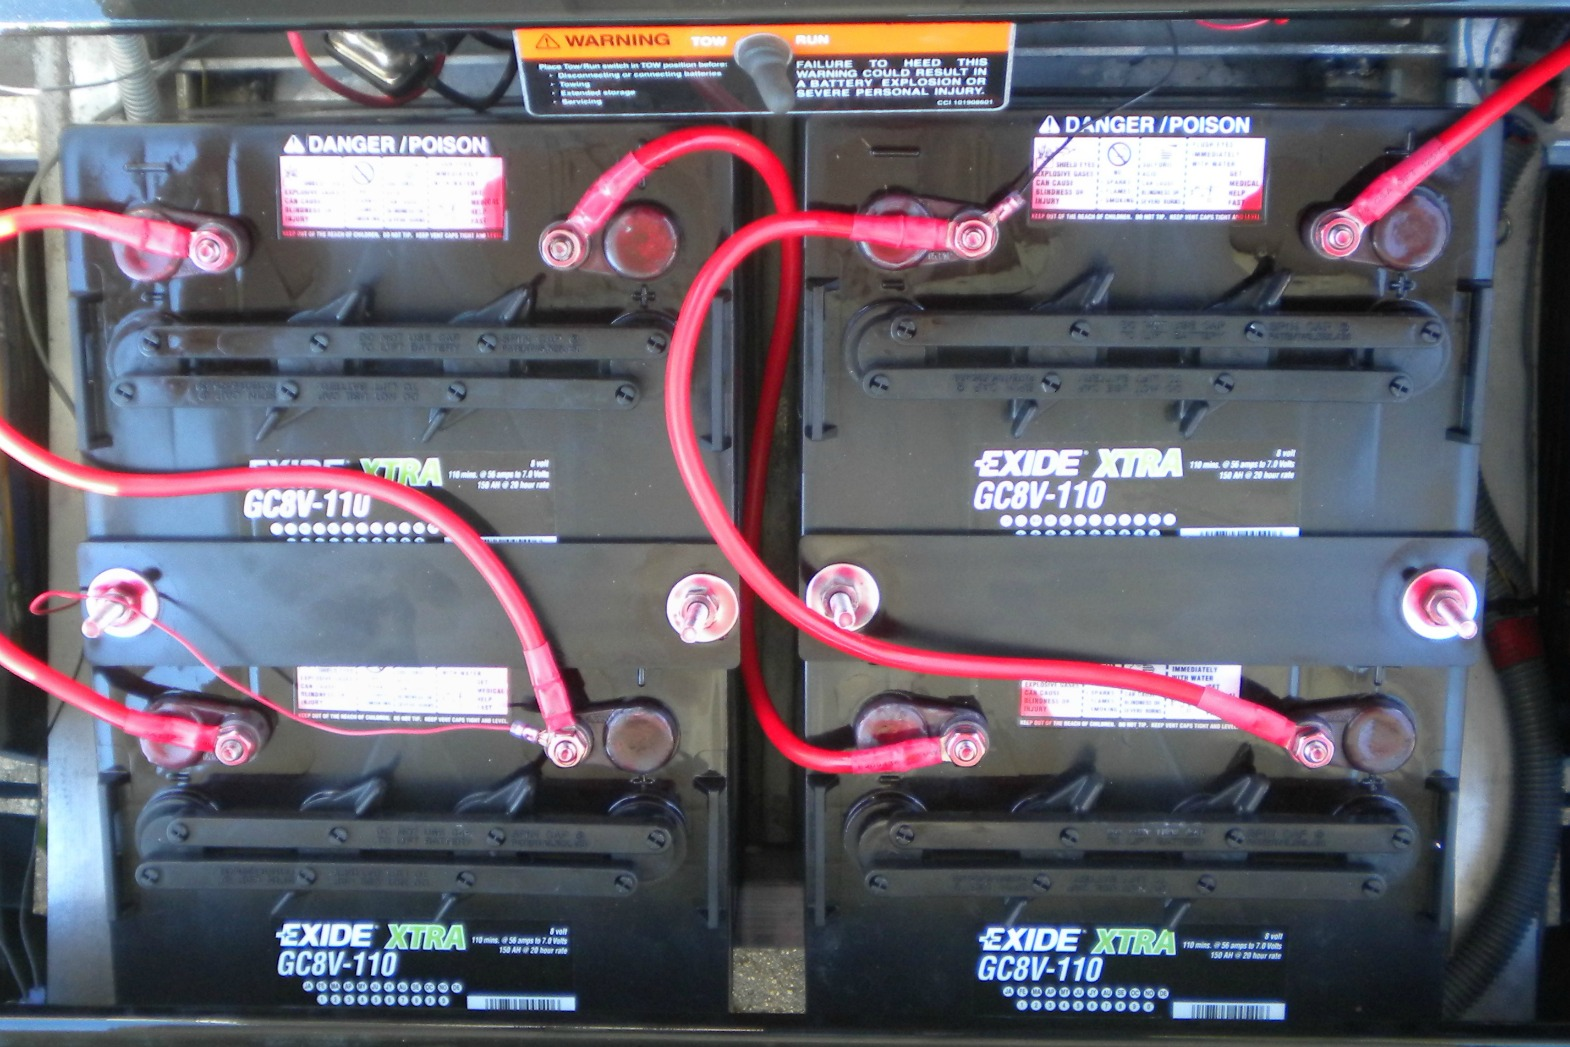 Trojan Golf Cart Batteries Wiring Diagram Free Download 48 Volt Battery Makes Maintenanace And More Melex At